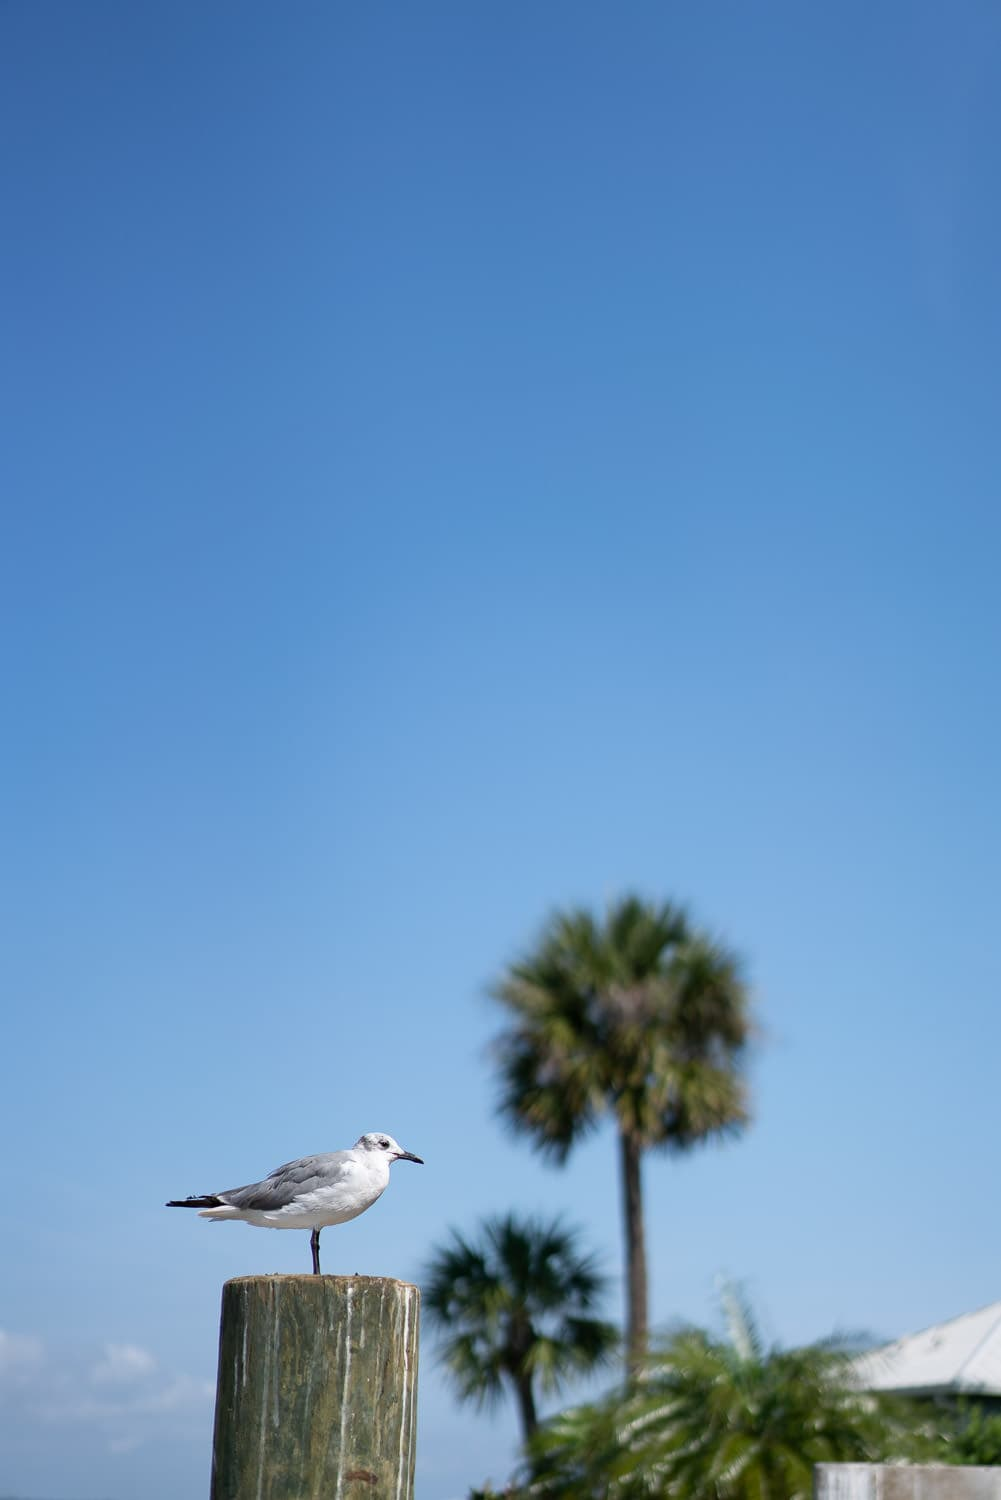 Print for sale: seagull on a dock in Florida